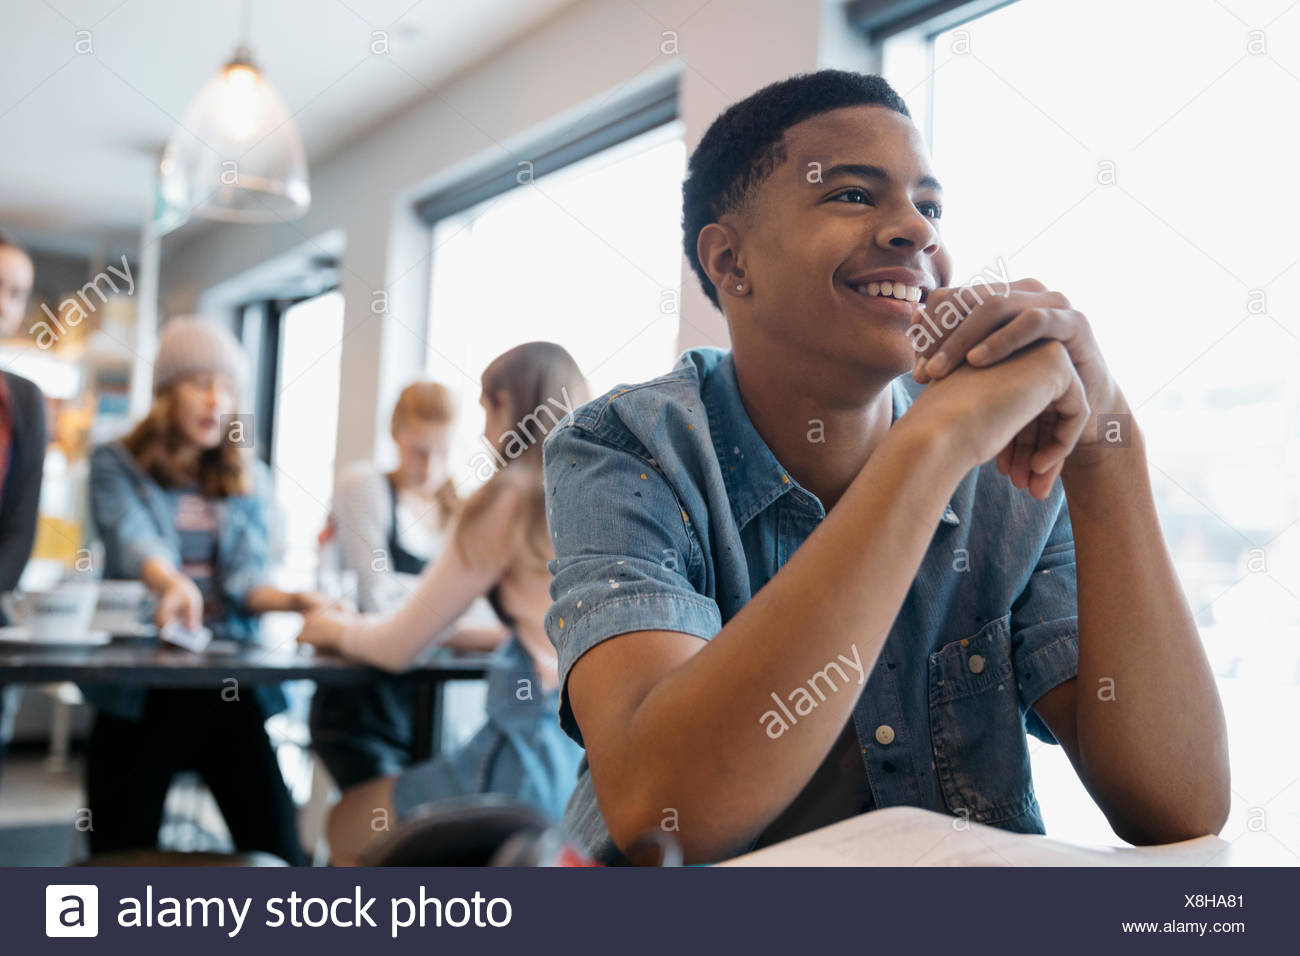 Smiling,confident African American high school boy student studying in cafe - Stock Image